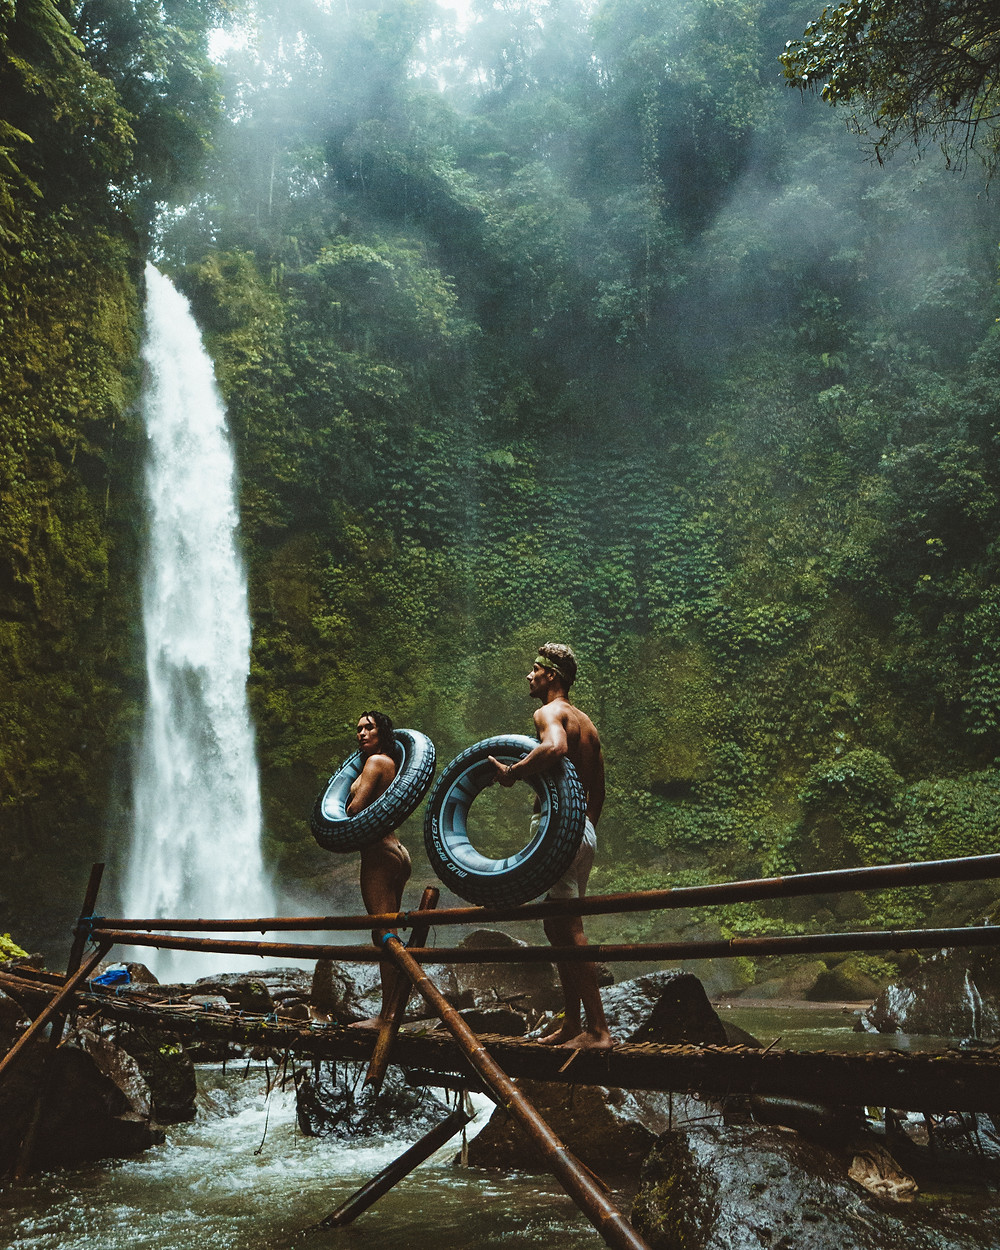 Couple on an exotic honeymoon carrying inner tubes walking towards a waterfall.